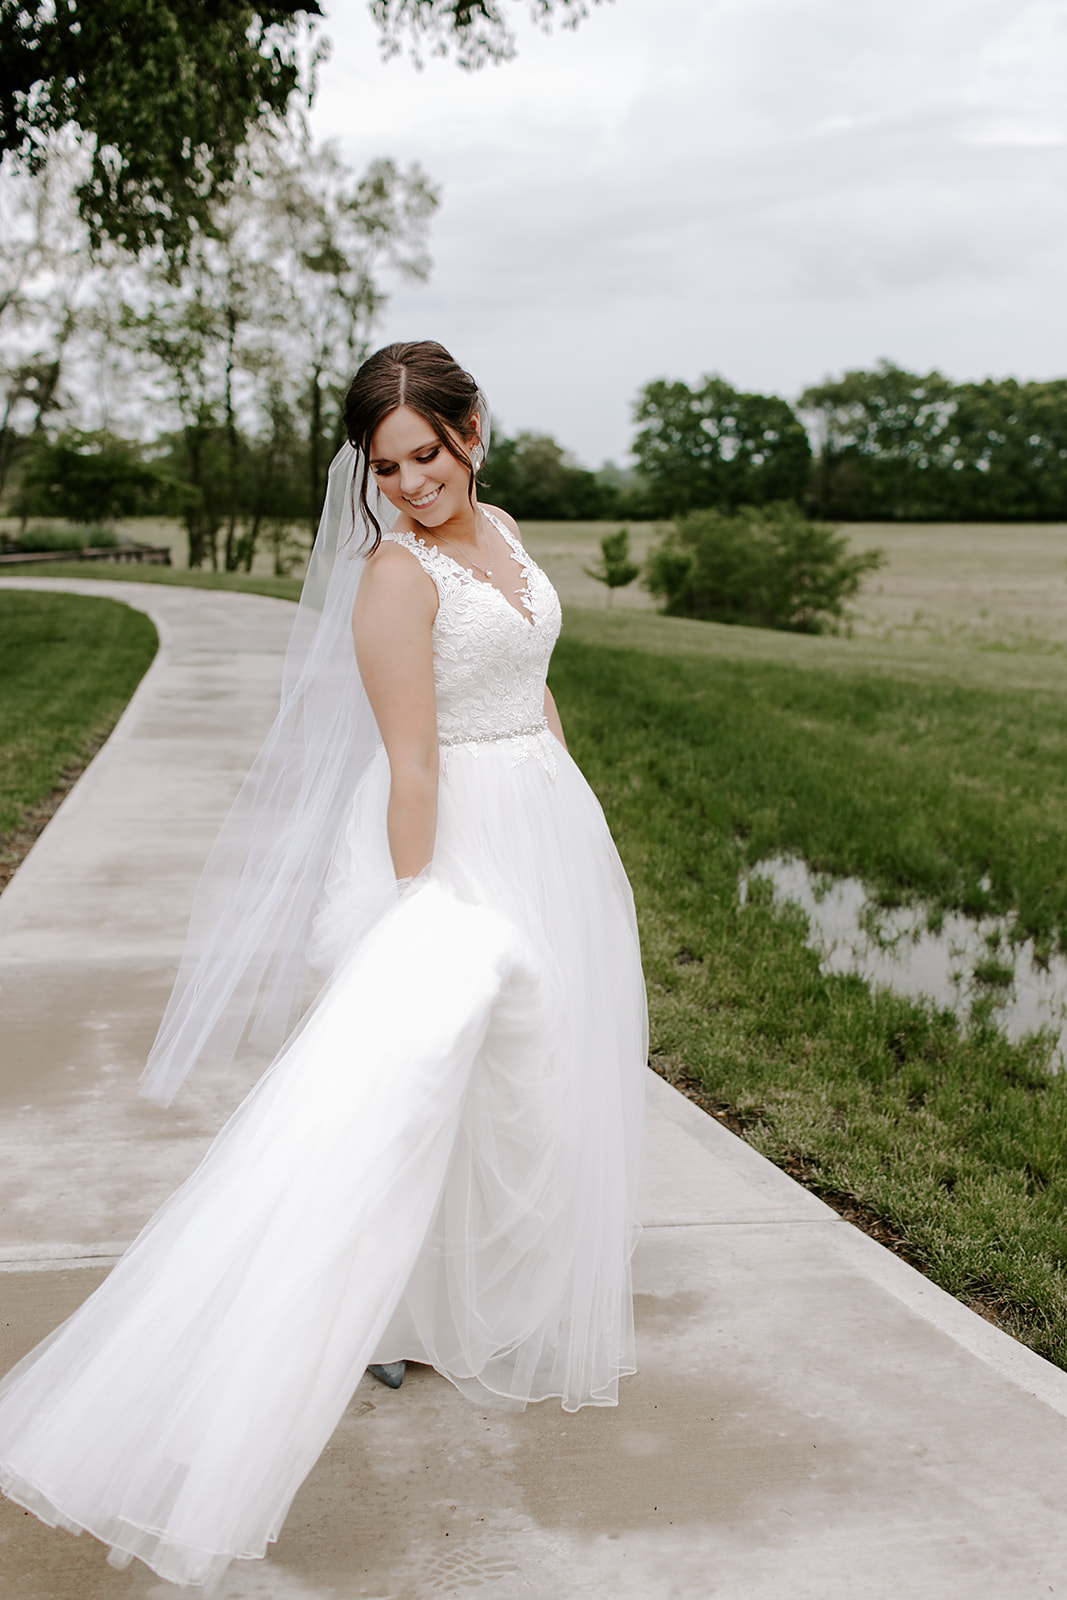 Kendra_and_Mattew_Indiana_Wedding_by_Emily_Wehner-367.jpg